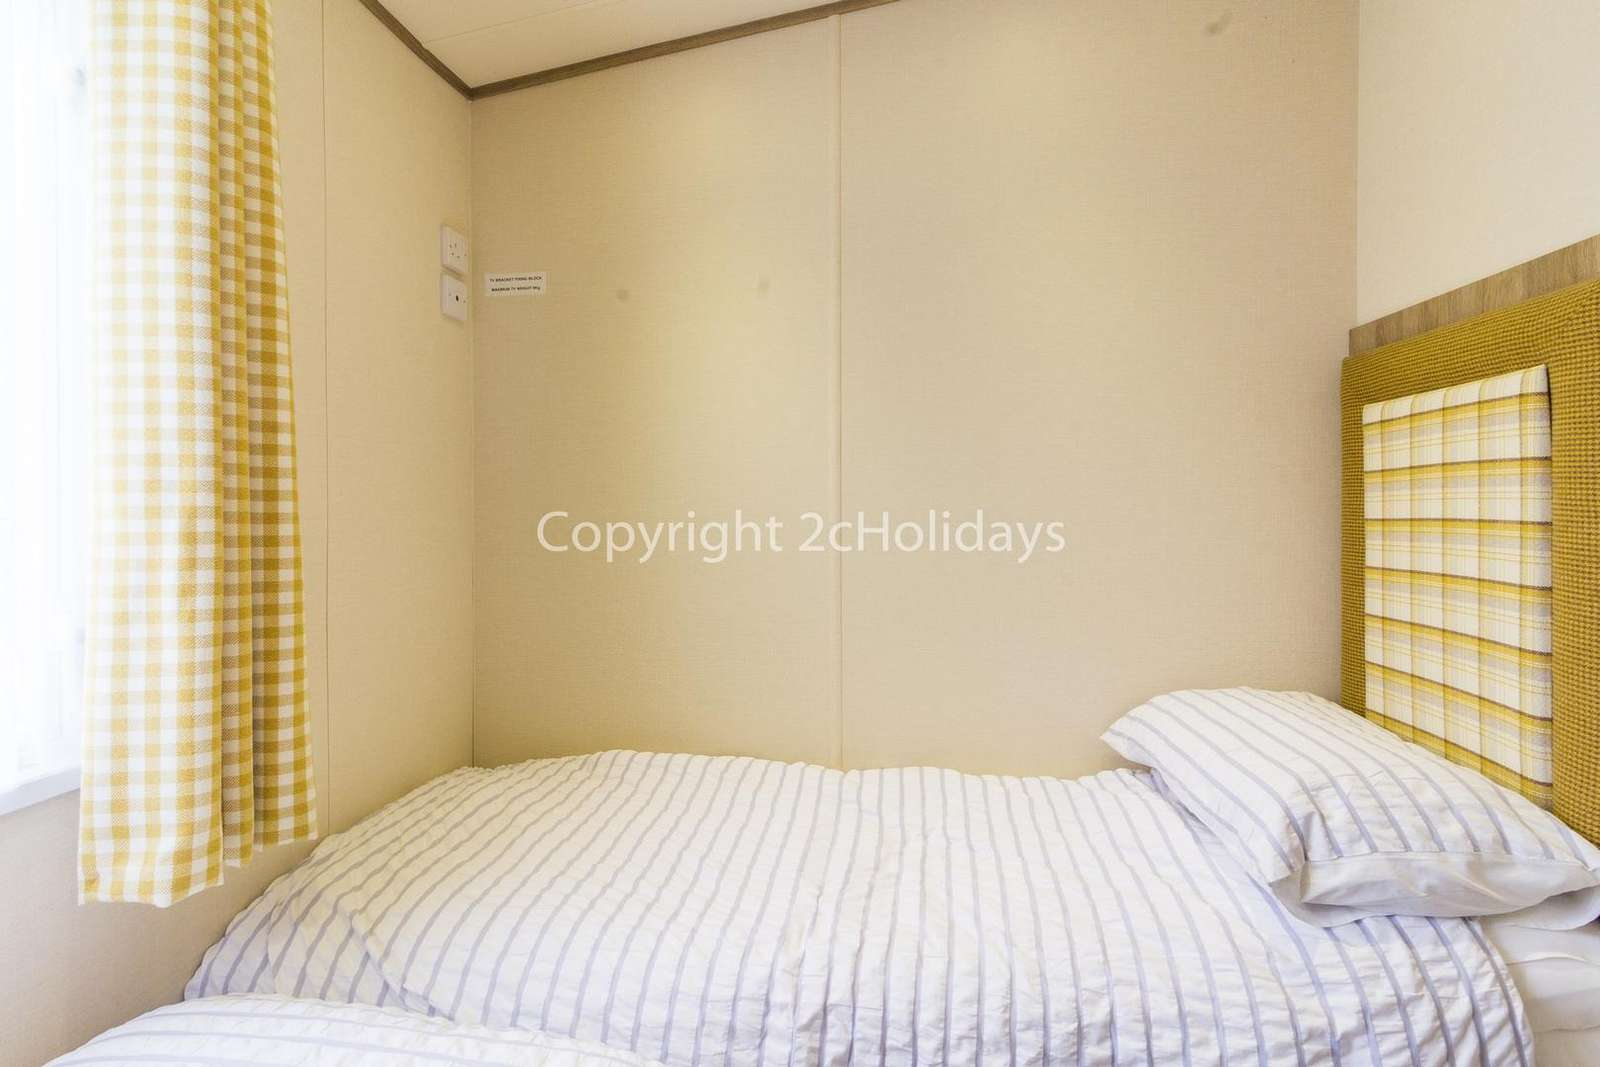 We ensure that all our holiday homes are cleaned to a high standard